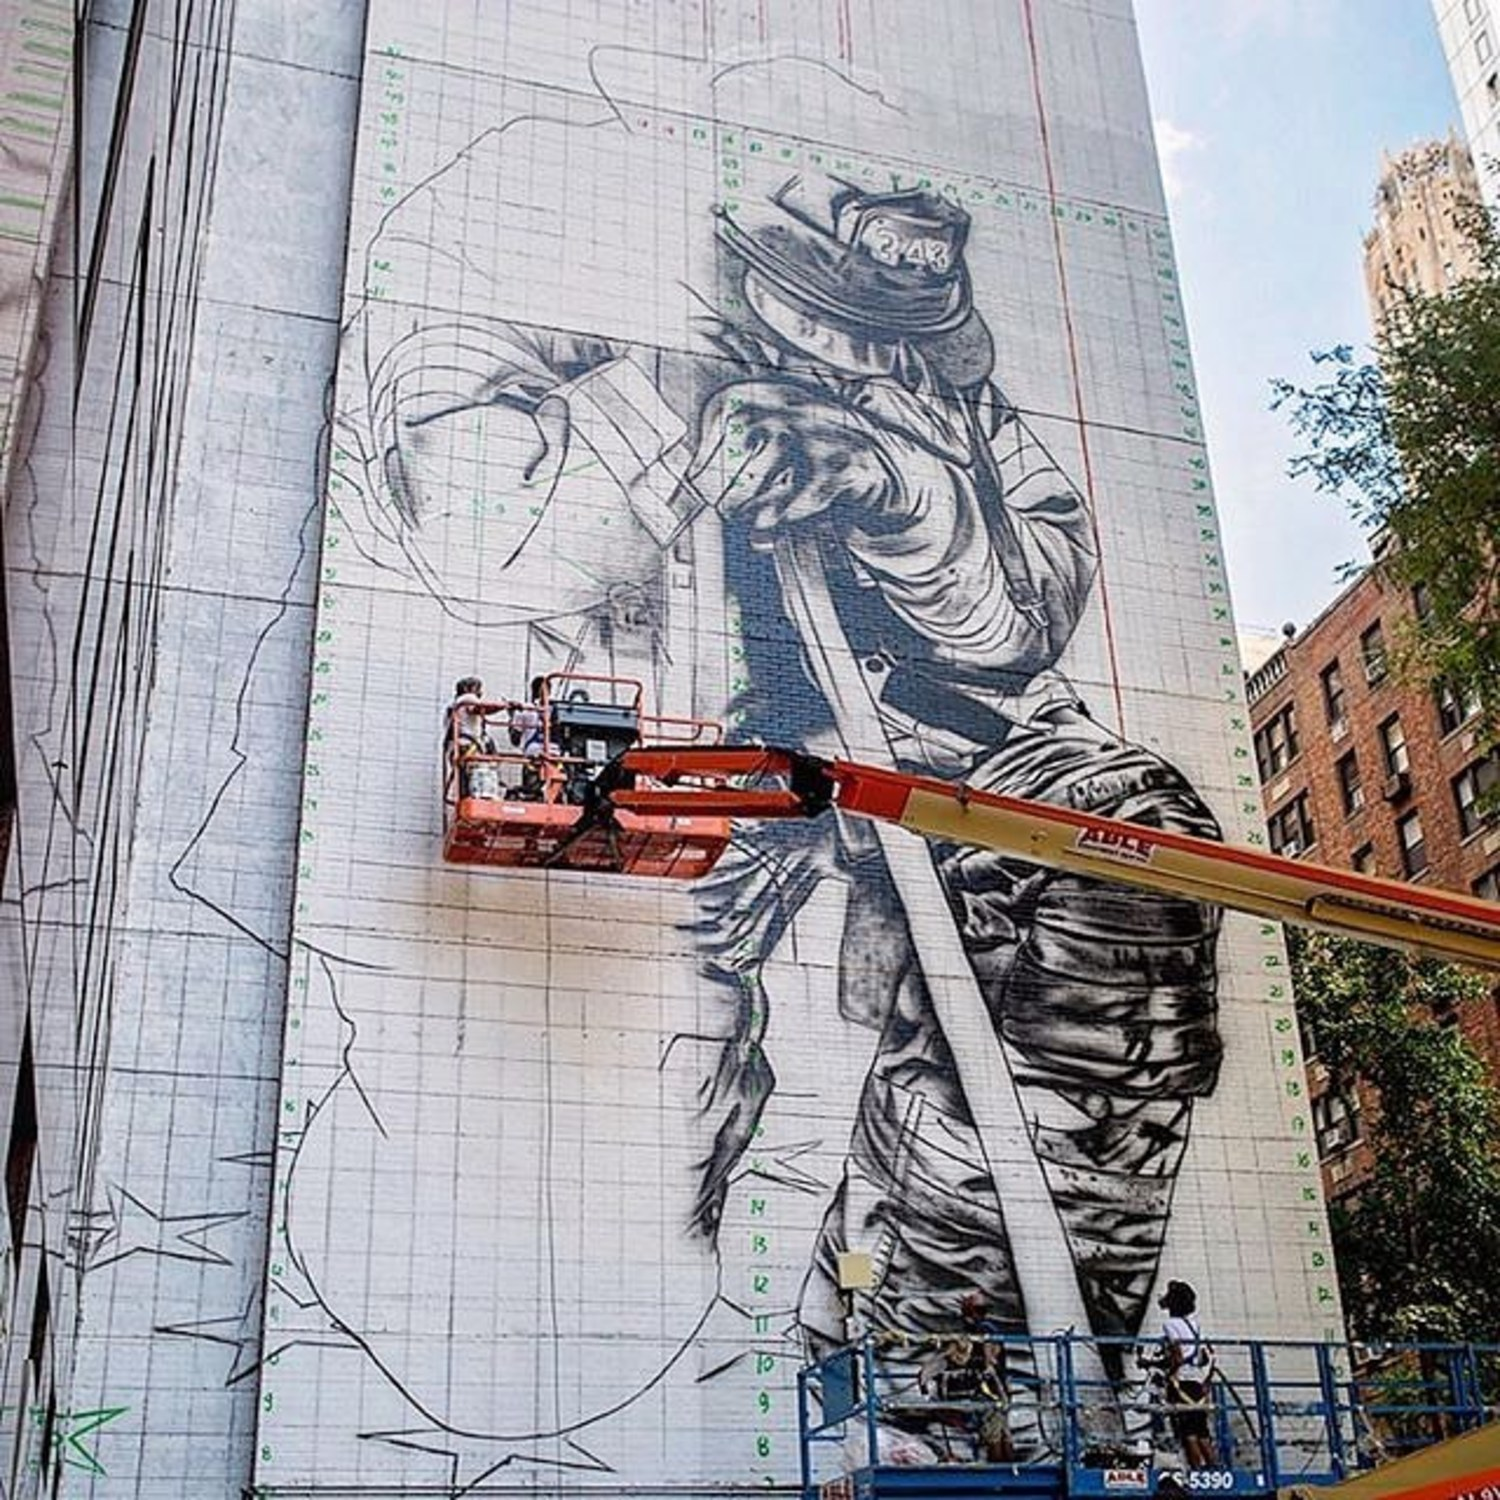 Another @kobrastreetart masterpiece takes shape at 150 East 49th Street Manhattan. It'll be a tribute to NYC firefighters. Providing the necessary lift to the artist are @jlgindustries and @genie_lift. Thanks @johndomine1 for the photo. #eduardokobra #ableequipment #ableequipmentrental #kobrastreetart #kobrapaint #urbanphotography #urbanstreetart #nycartist #brazilart #johndomine1 #fdny #nycrealestate #manhattanrealestate #mewp #firefighter #publicart #constructionphotography #constructionequipment #nycbravest #muralist #nycmurals